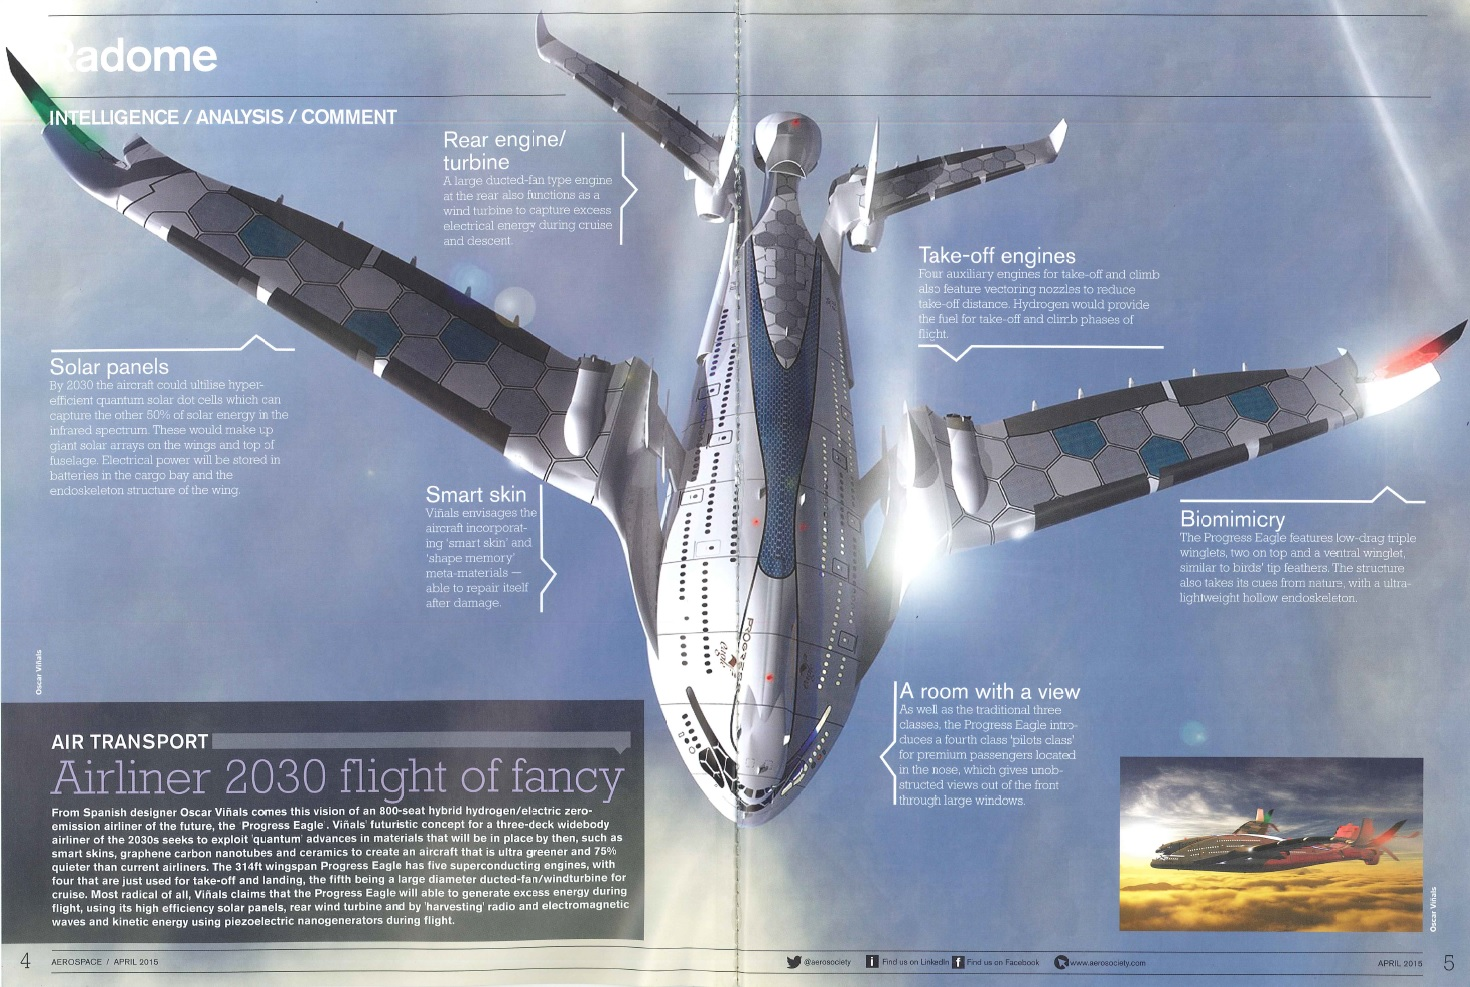 Source:  AeroSpace Magazine (April 2015)